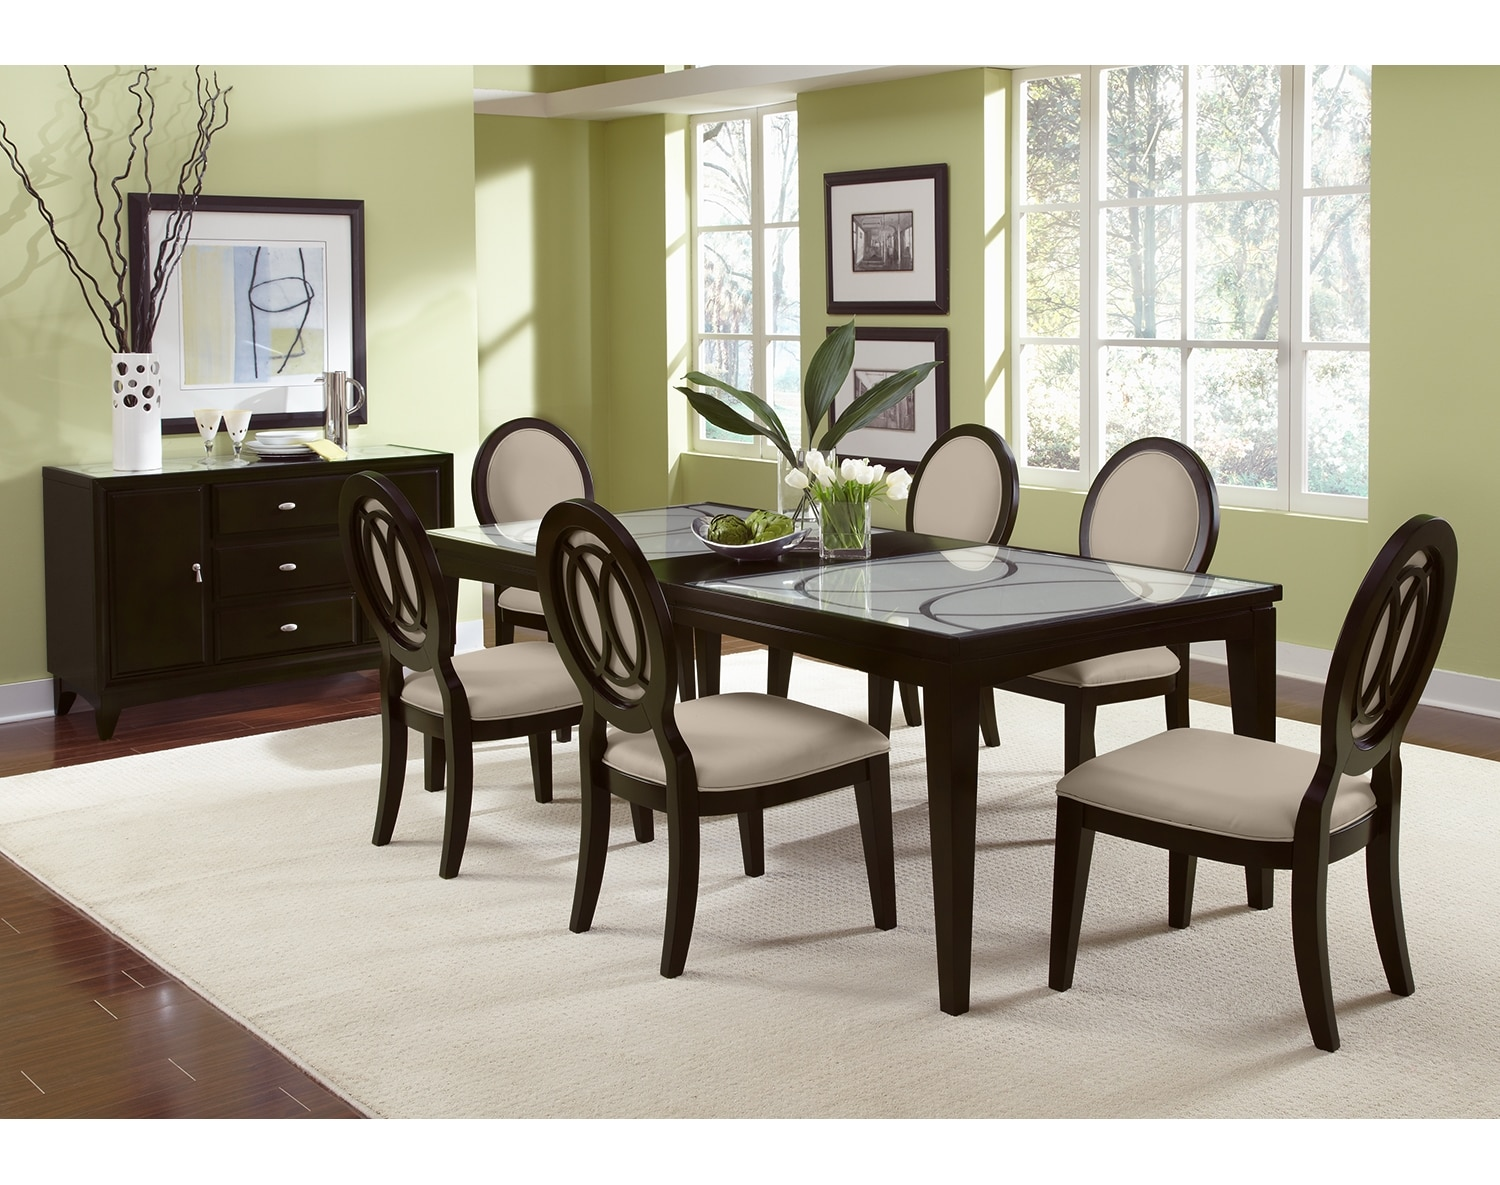 Shop Dining Room Collections Value City Furniture and Mattresses